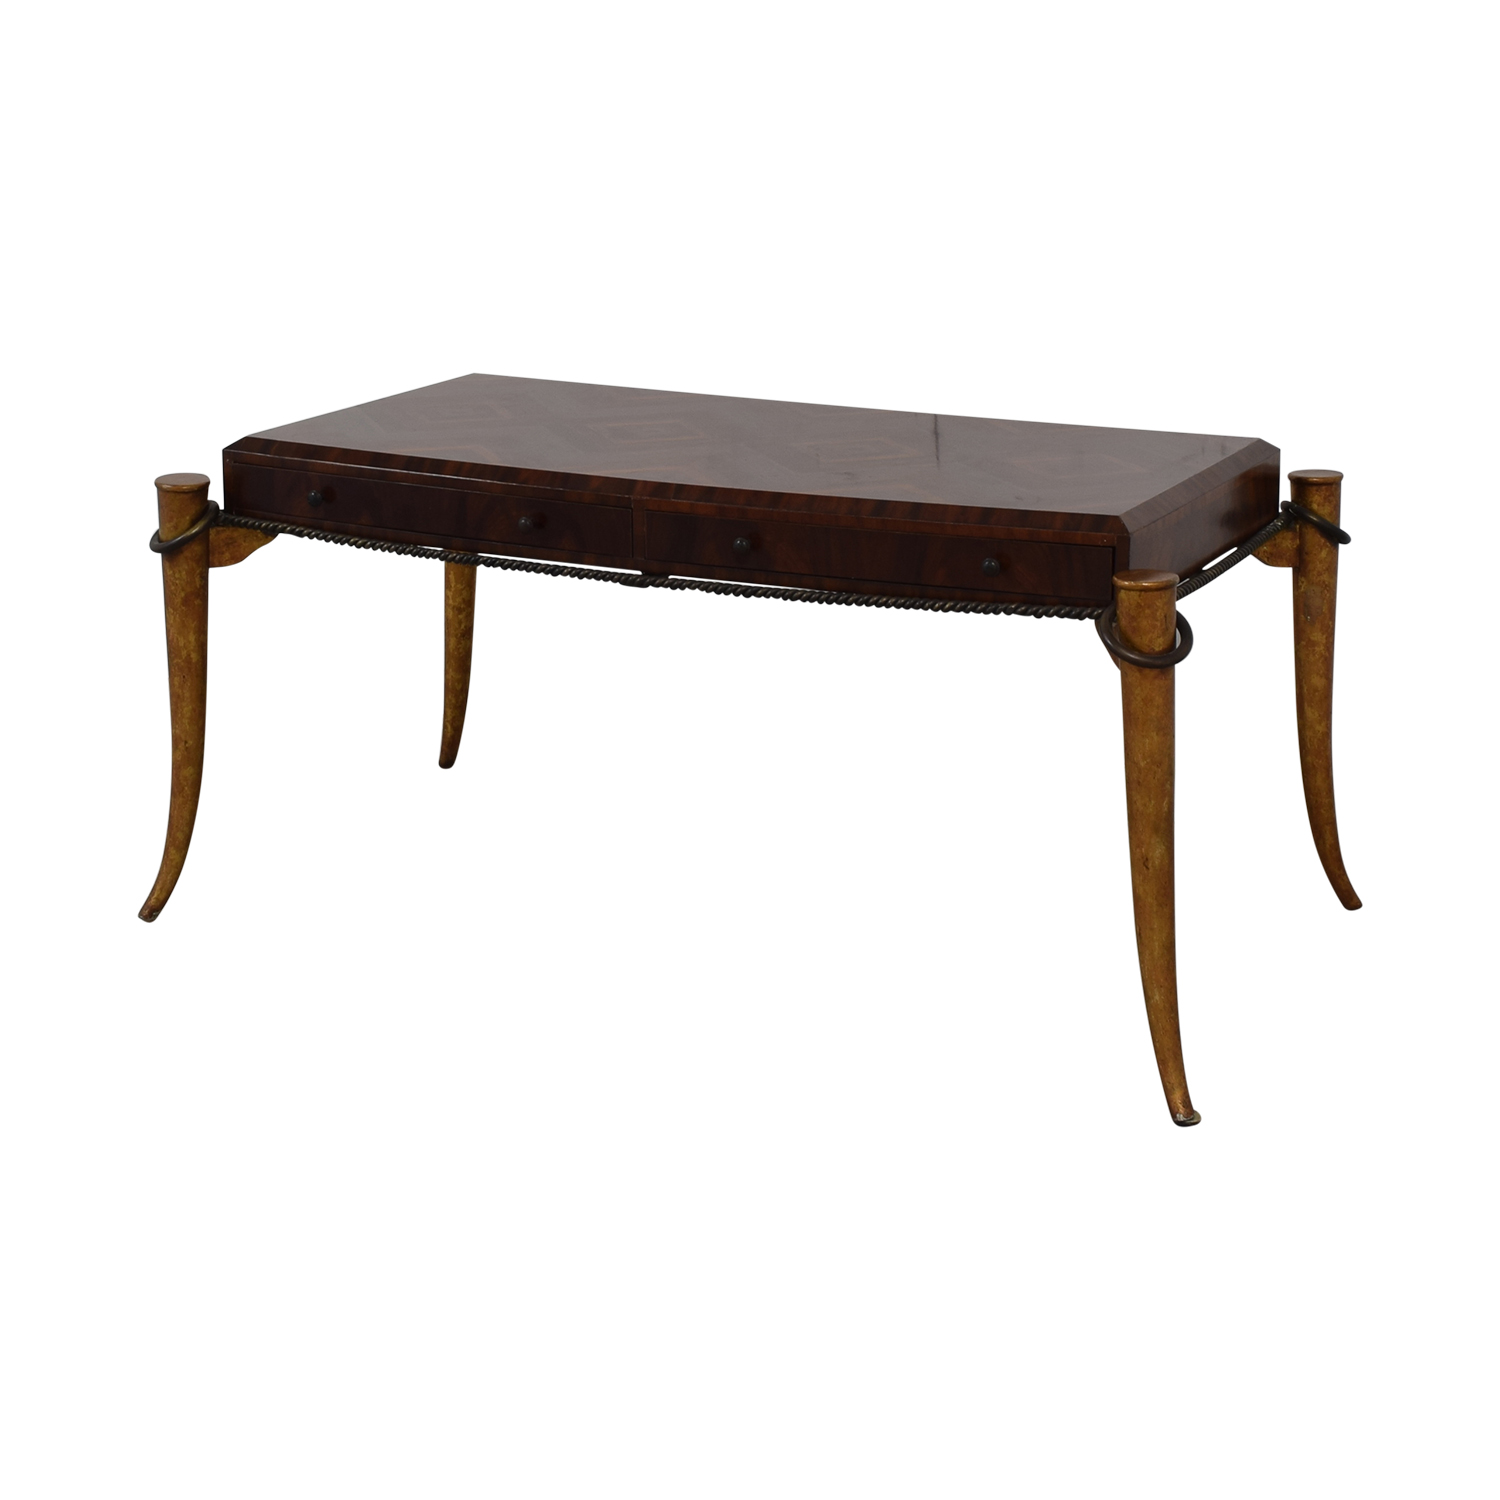 Maitland-Smith Maitland-Smith Rosewood Inlaid Desk brown